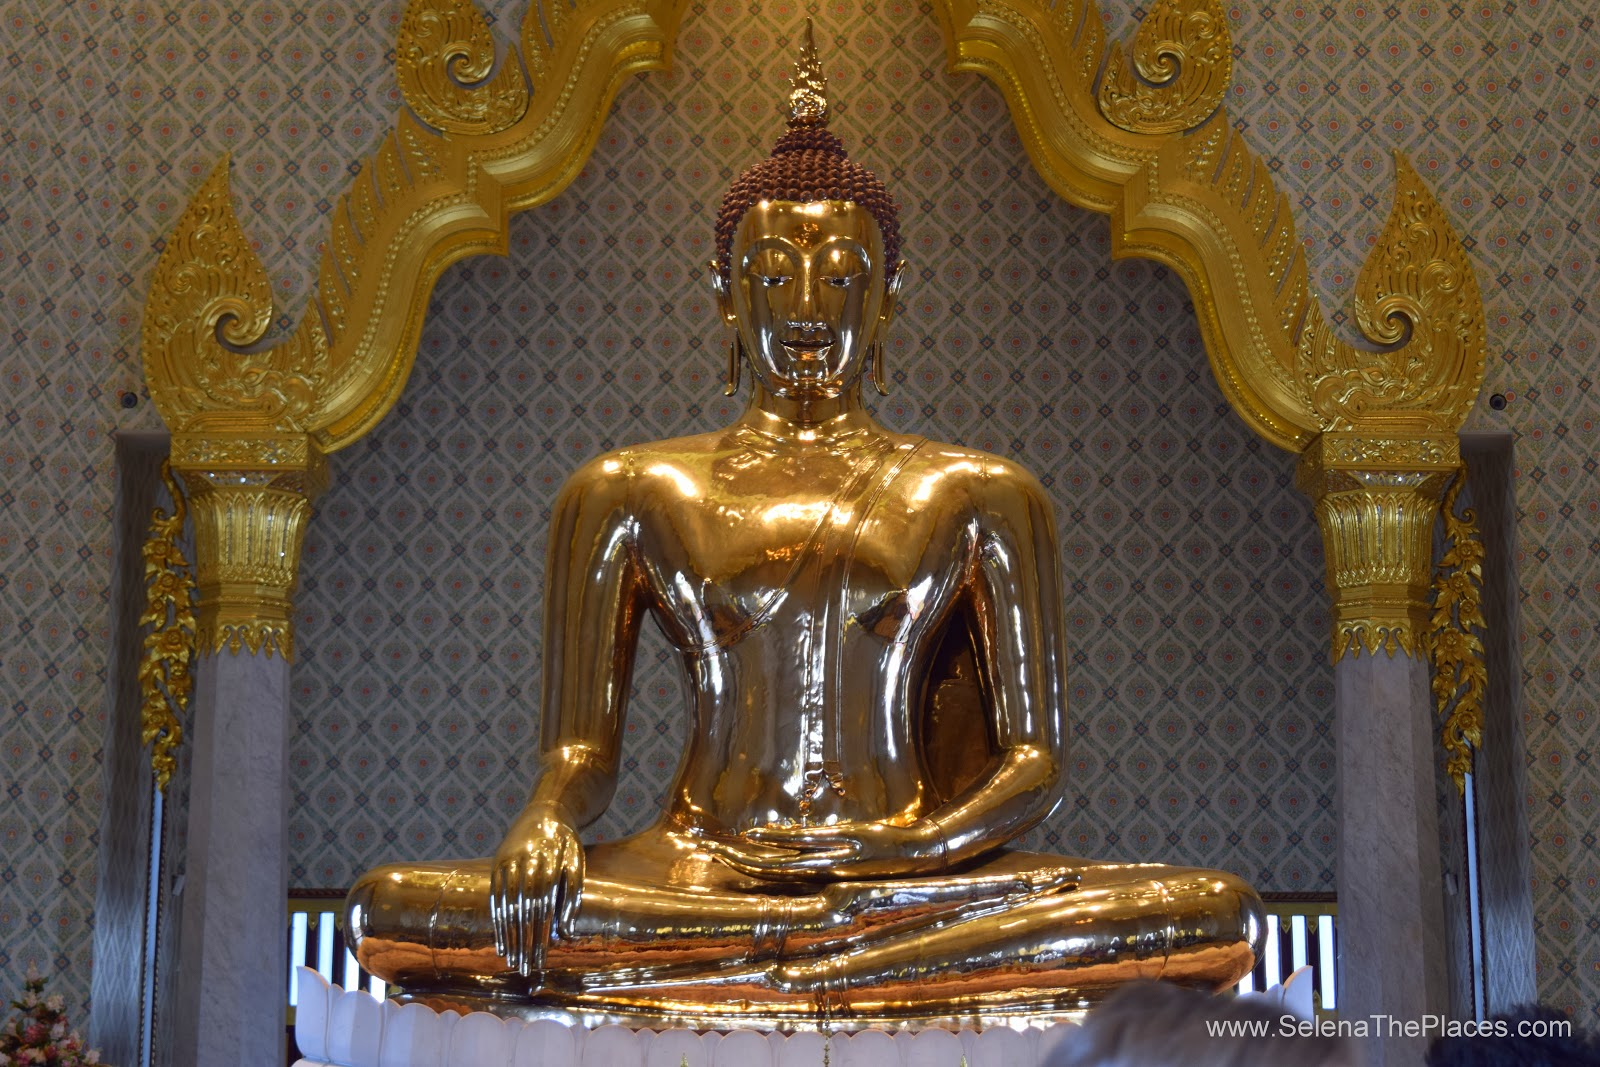 Oh, the places we will go!: Golden Buddha of Wat Traimit